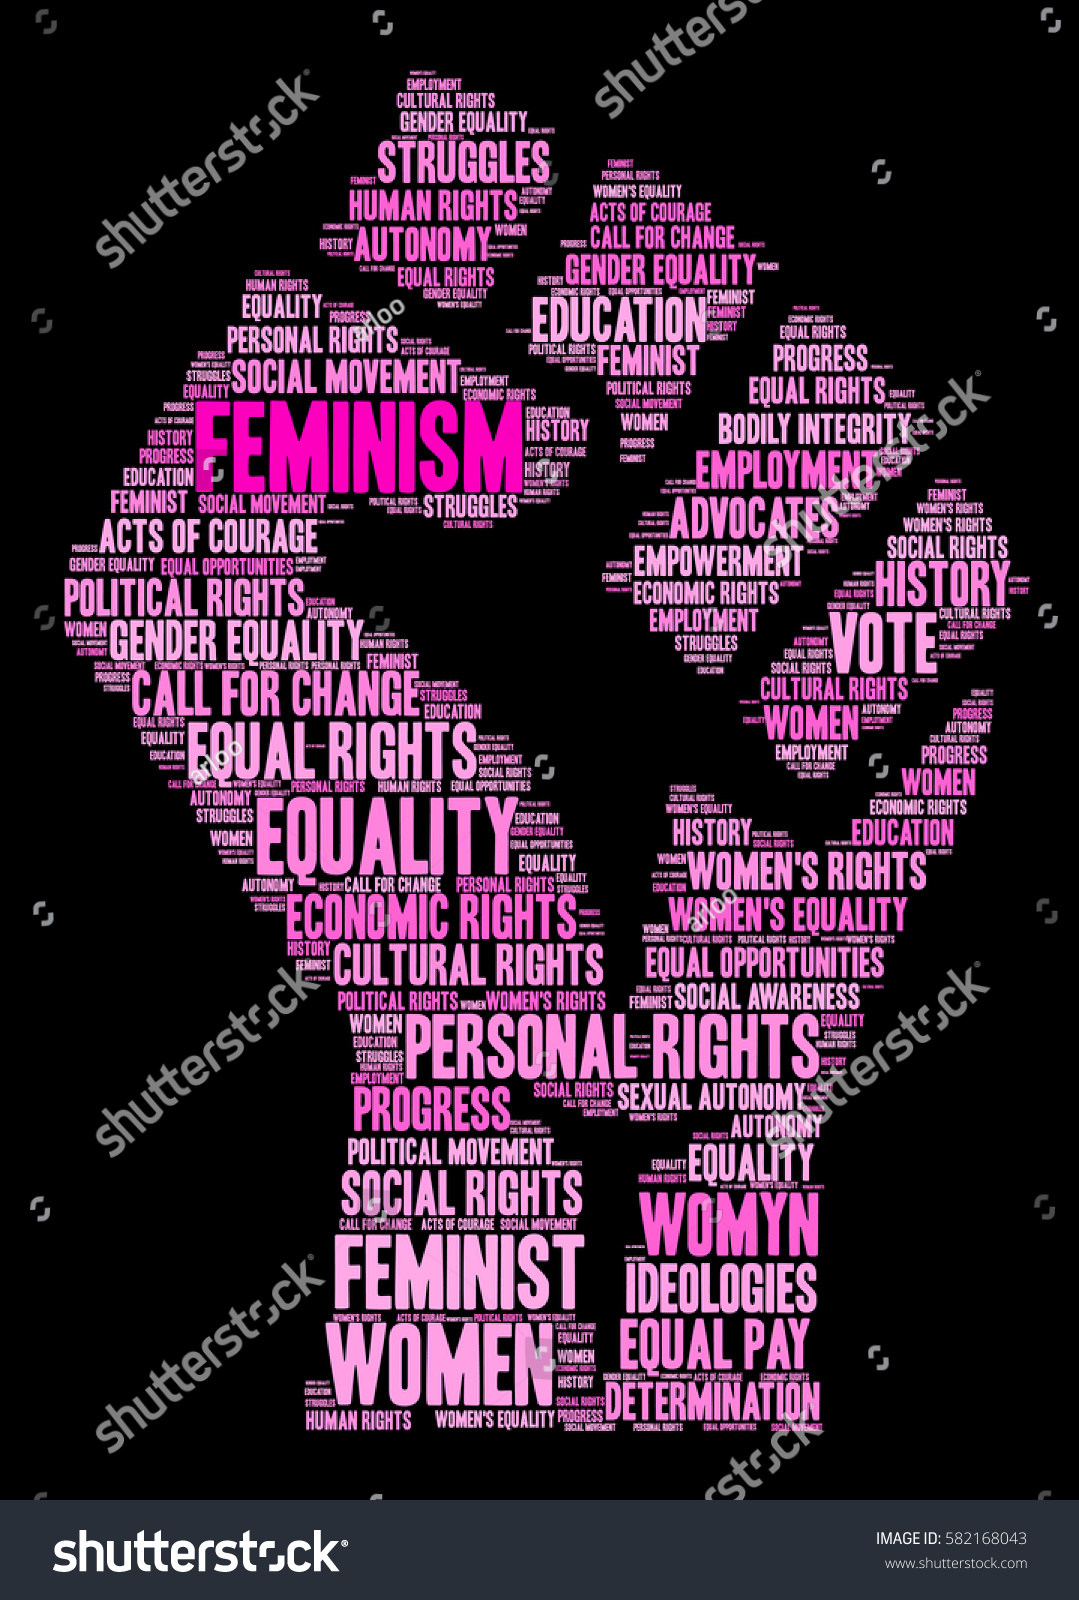 Feminism word cloud on black background stock vector 582168043 feminism word cloud on a black background biocorpaavc Images